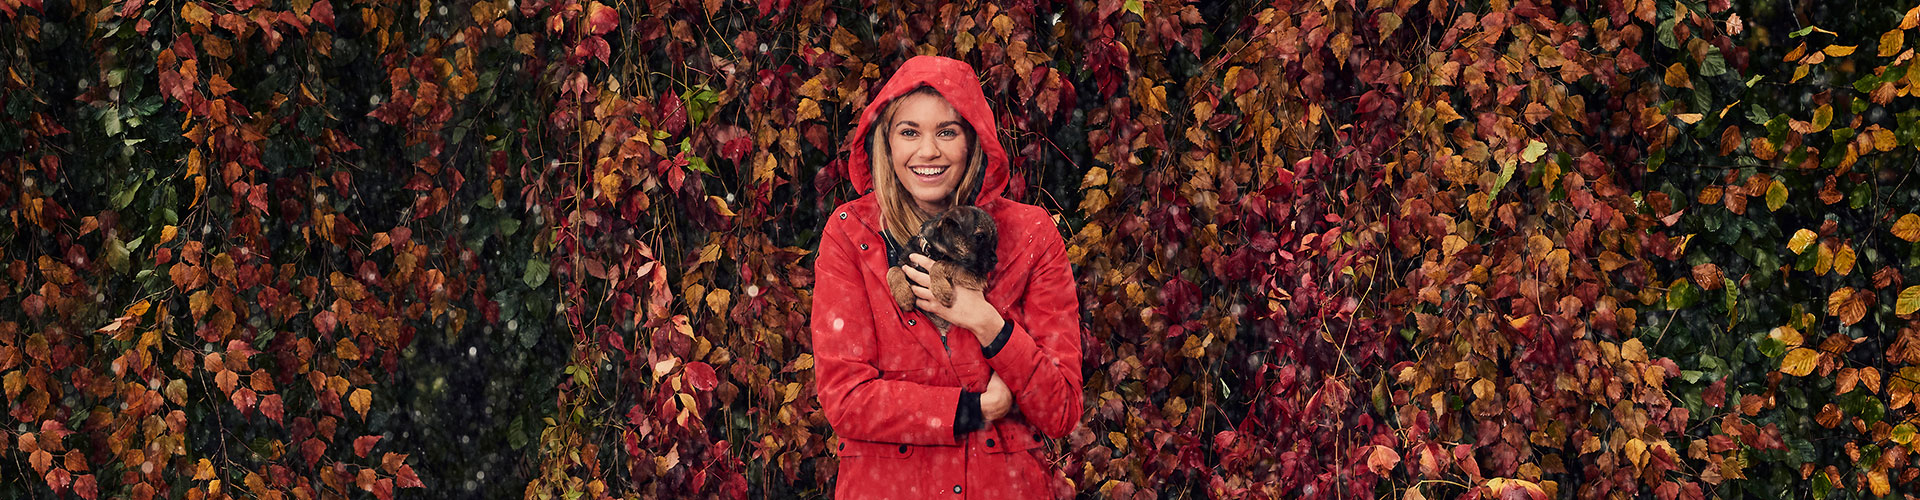 Barbour Weather Comfort AW18 Campaign